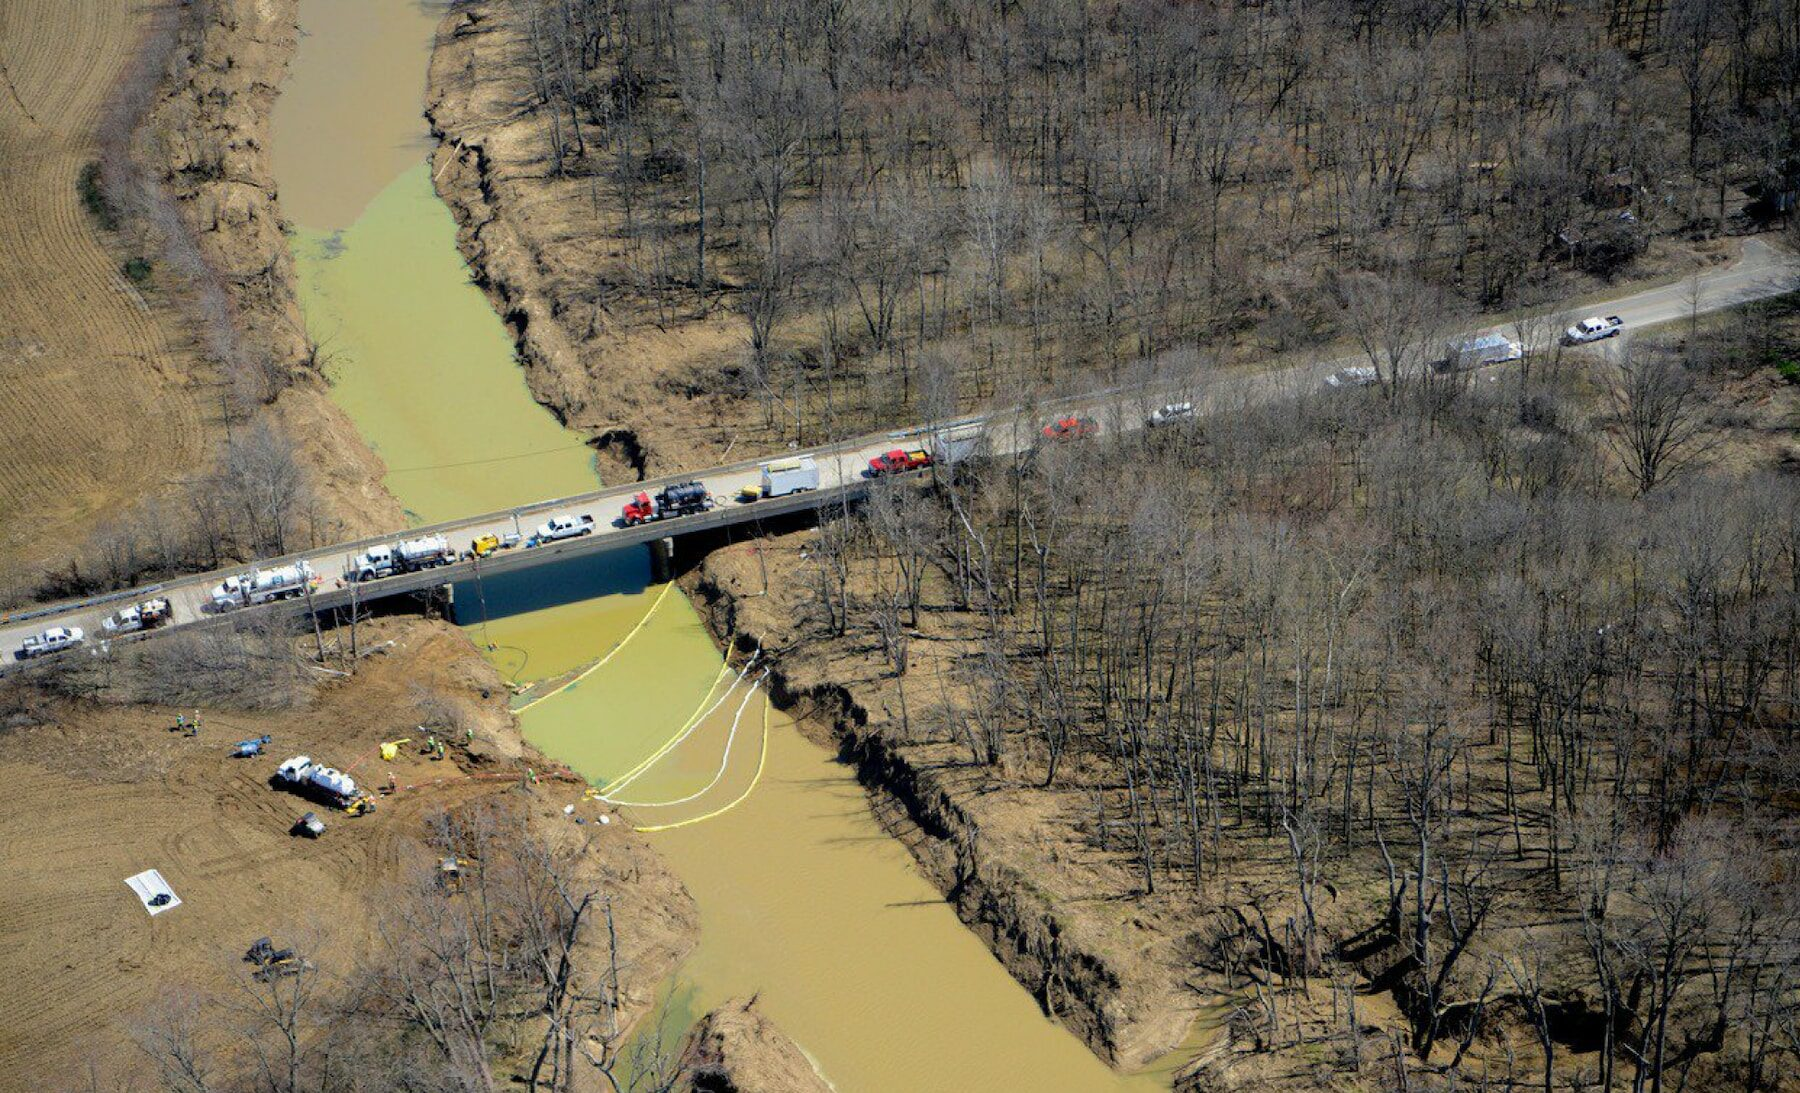 Overhead view of oil spill in waterway